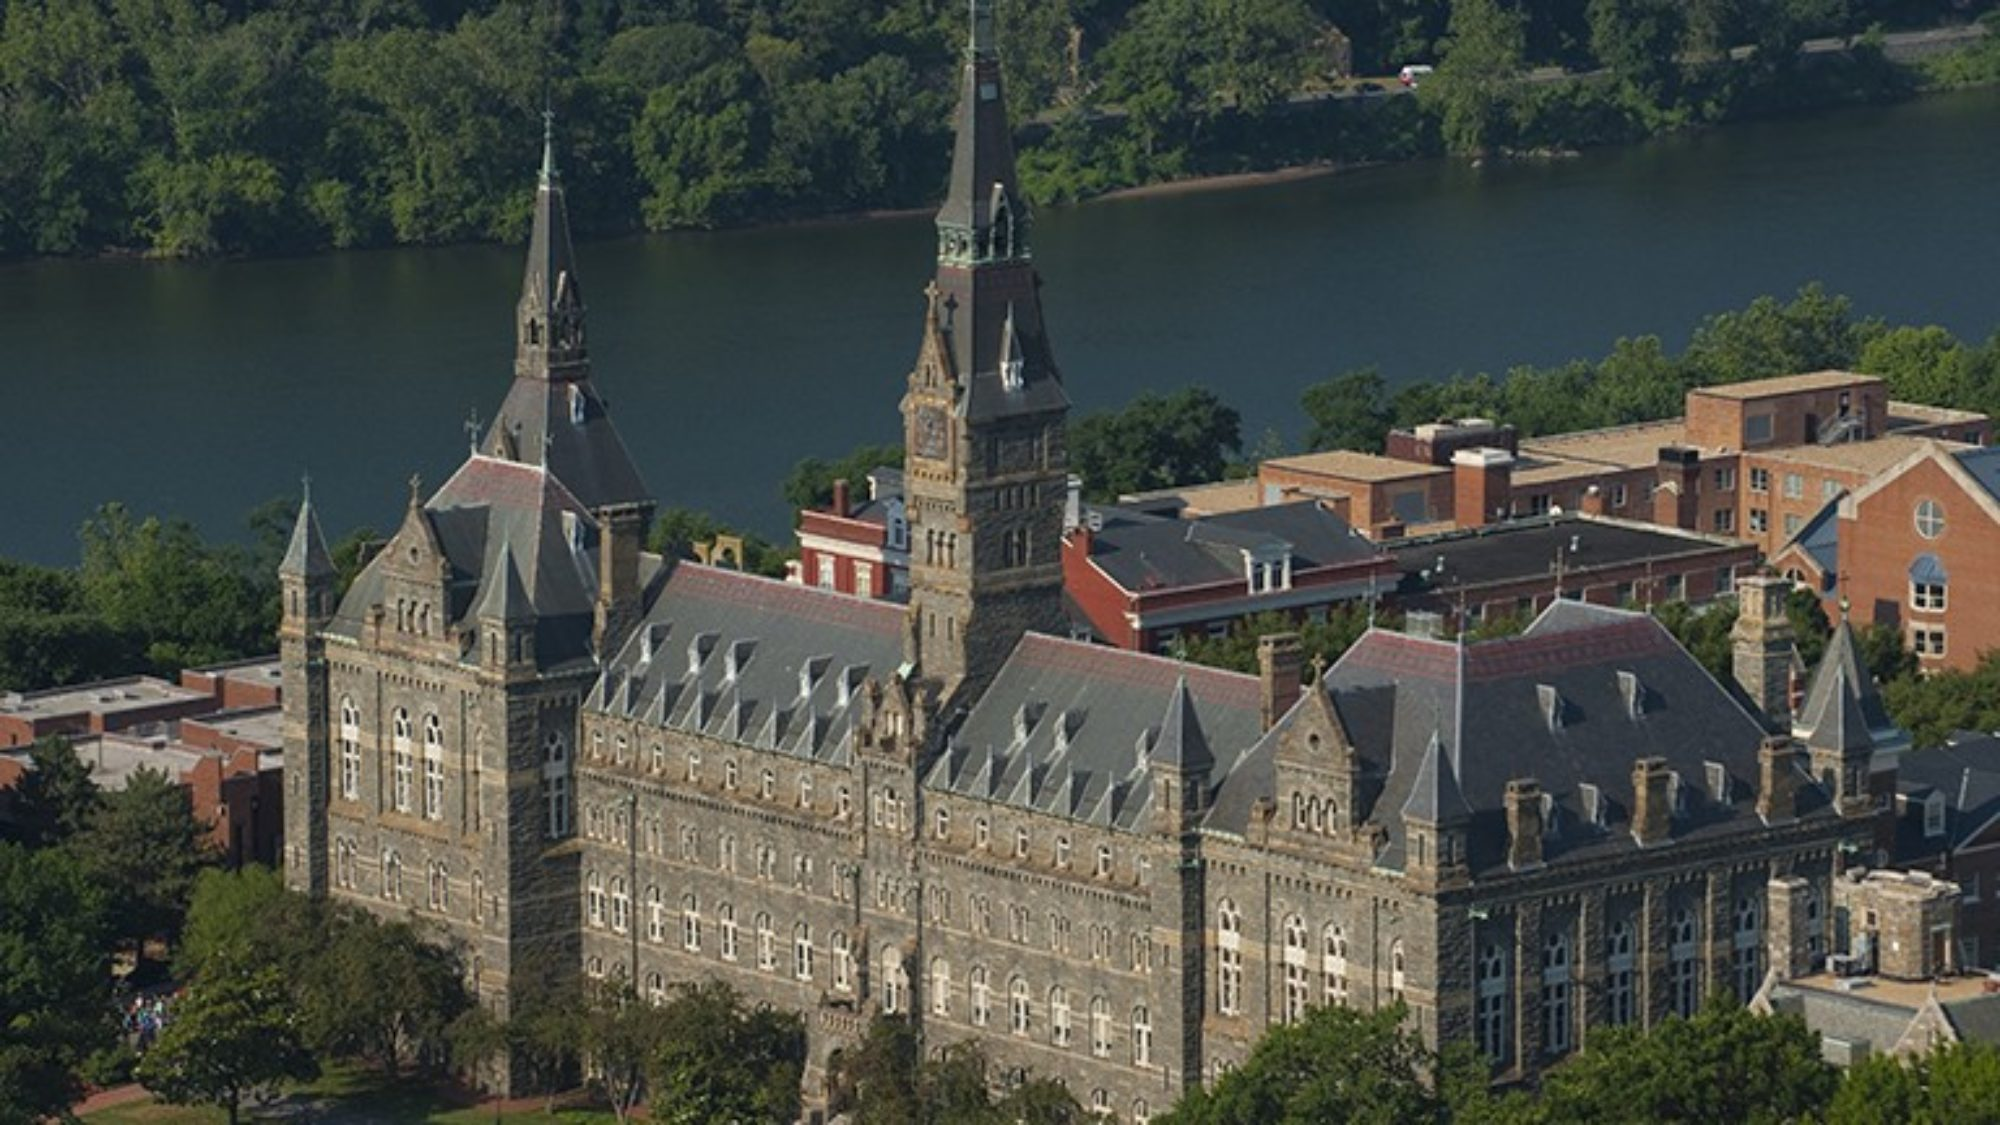 Aerial view of Georgetown focusing on Healy Hall